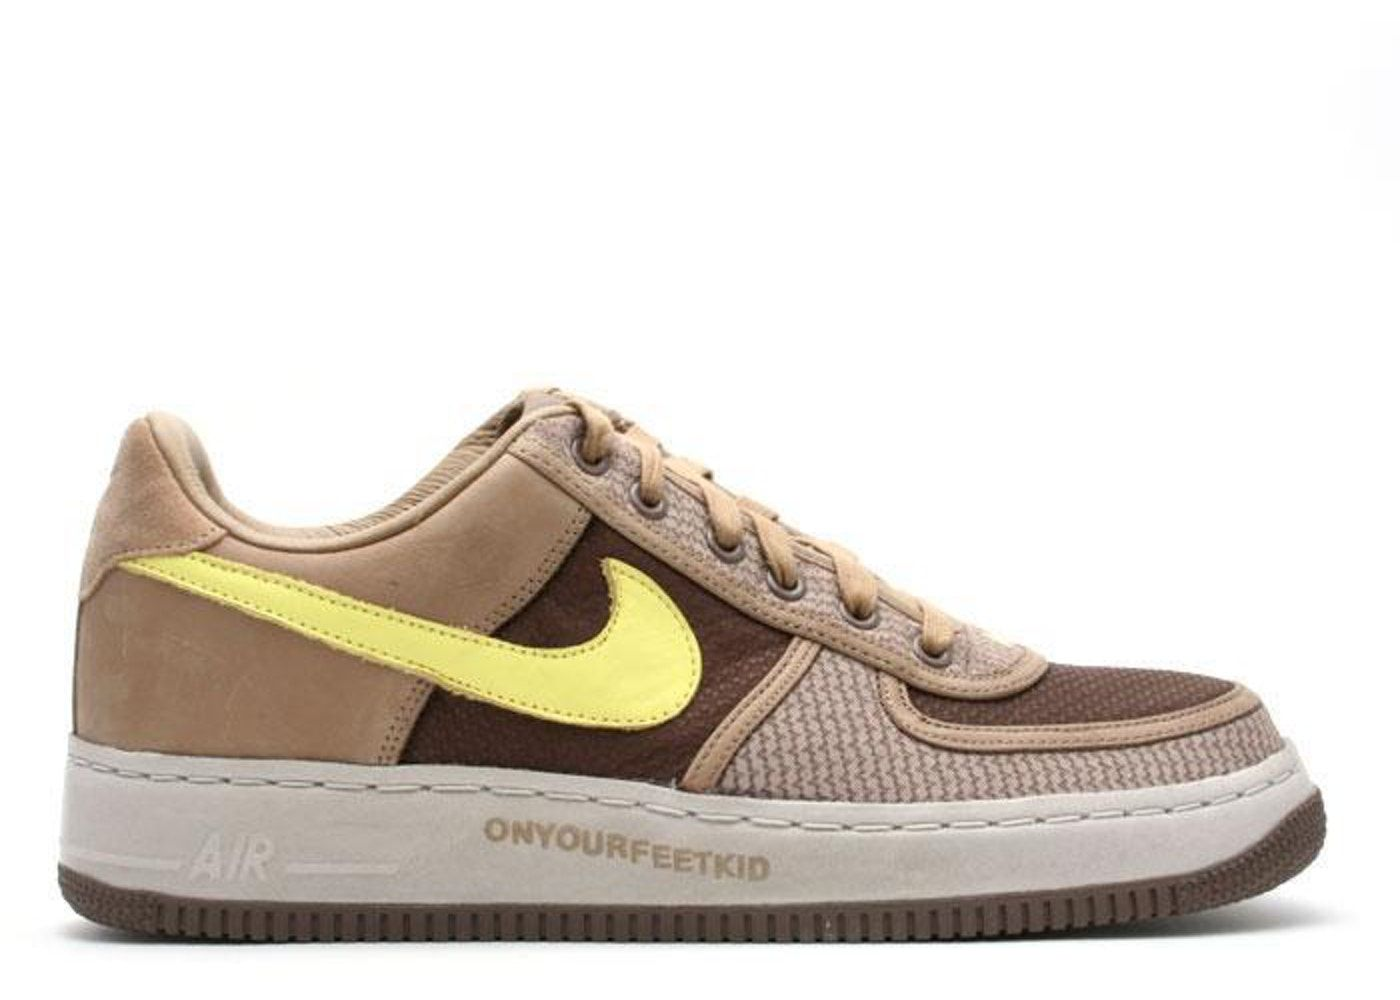 Nike Air Force 1 Low UNDFTD Canteen